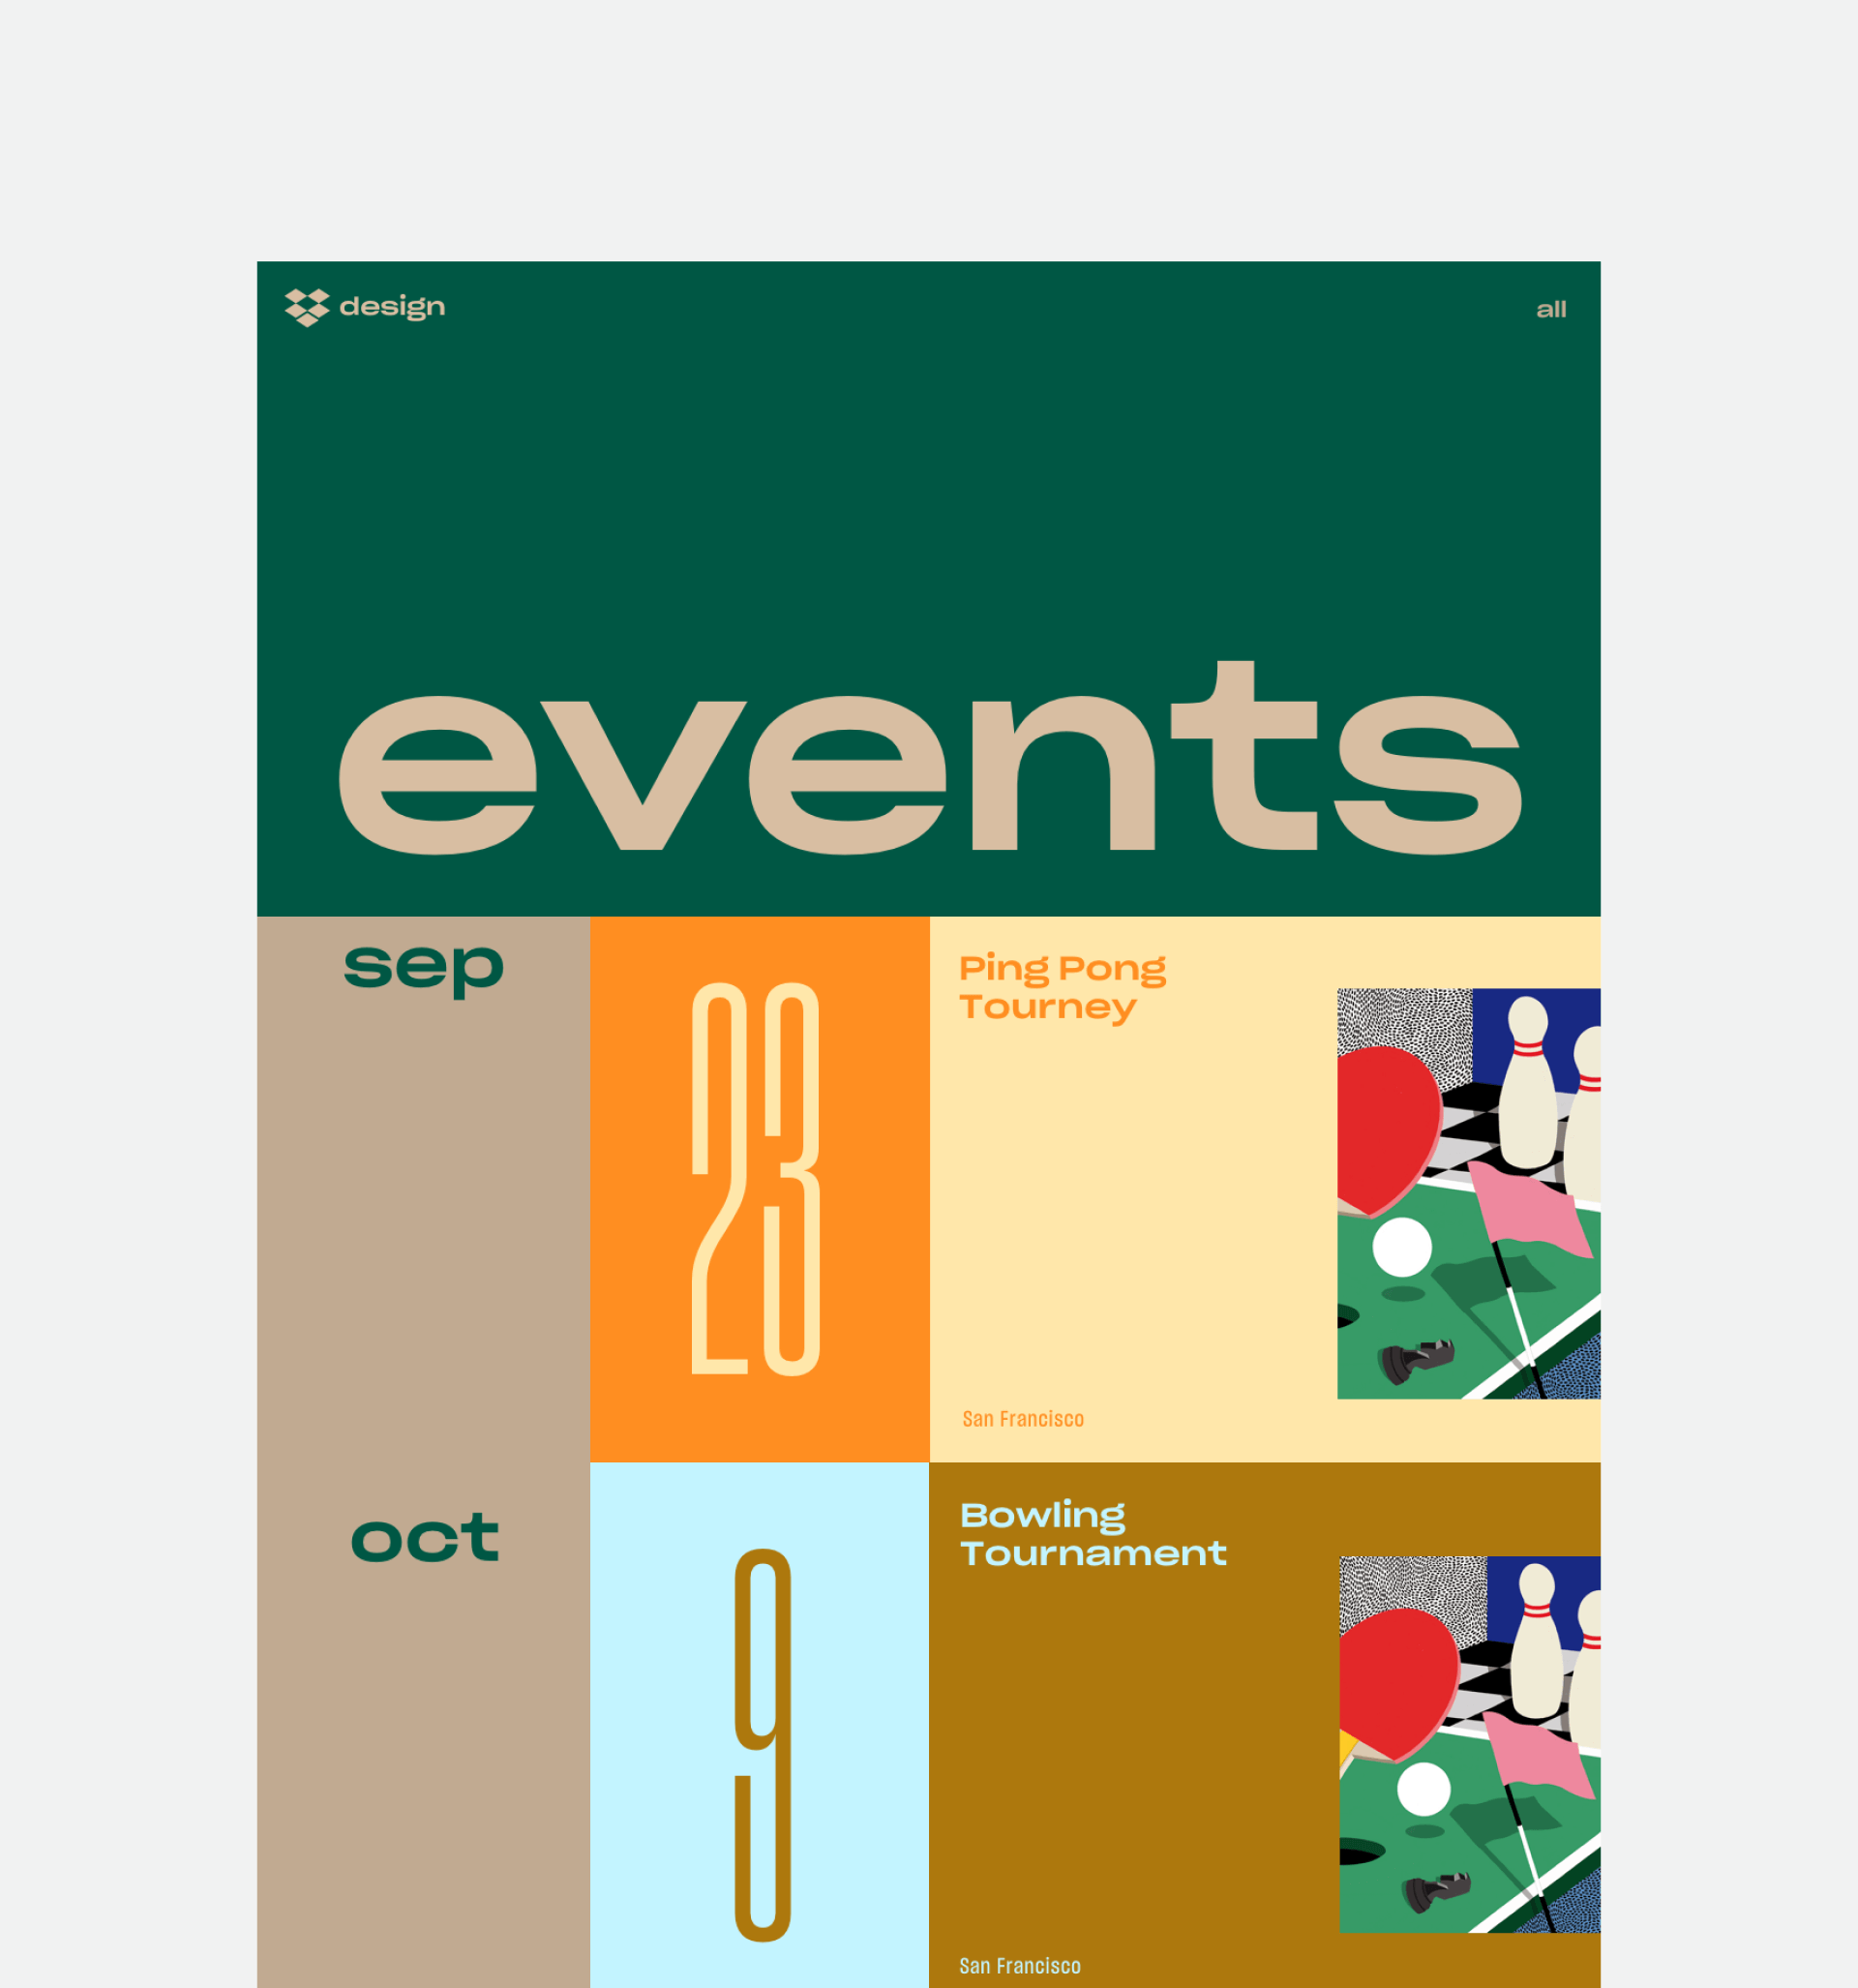 Dropbox events page